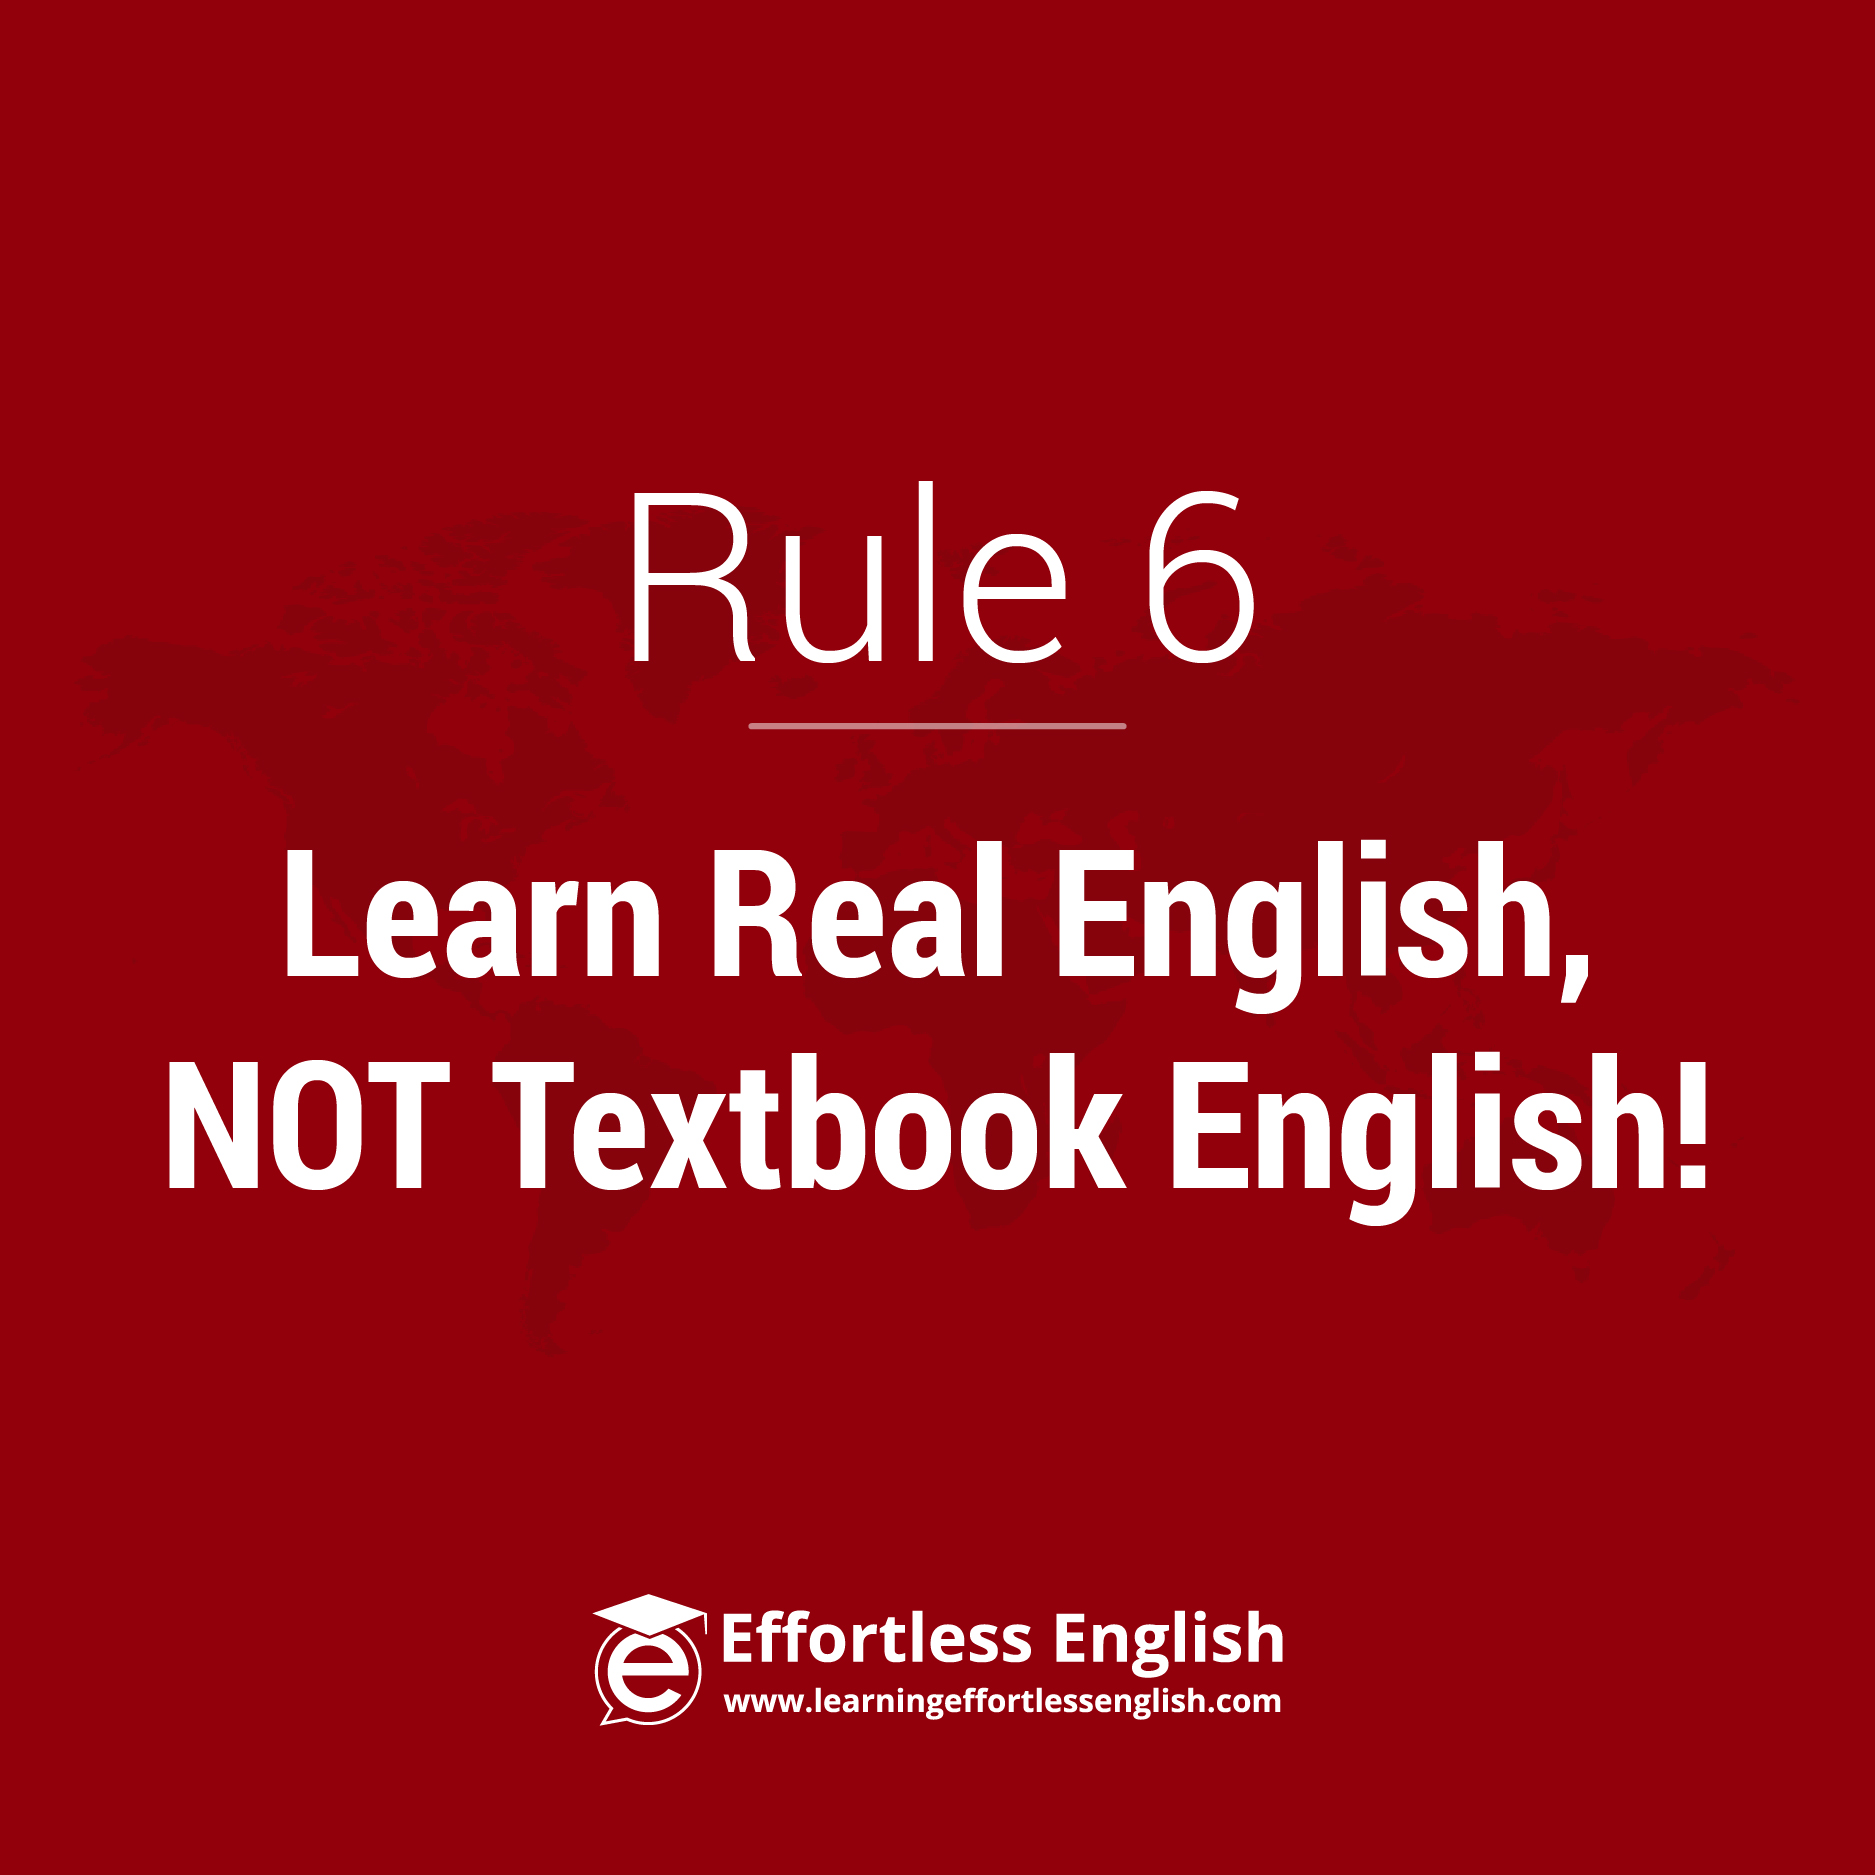 Rule 6: Only Use Real English Lessons & Materials